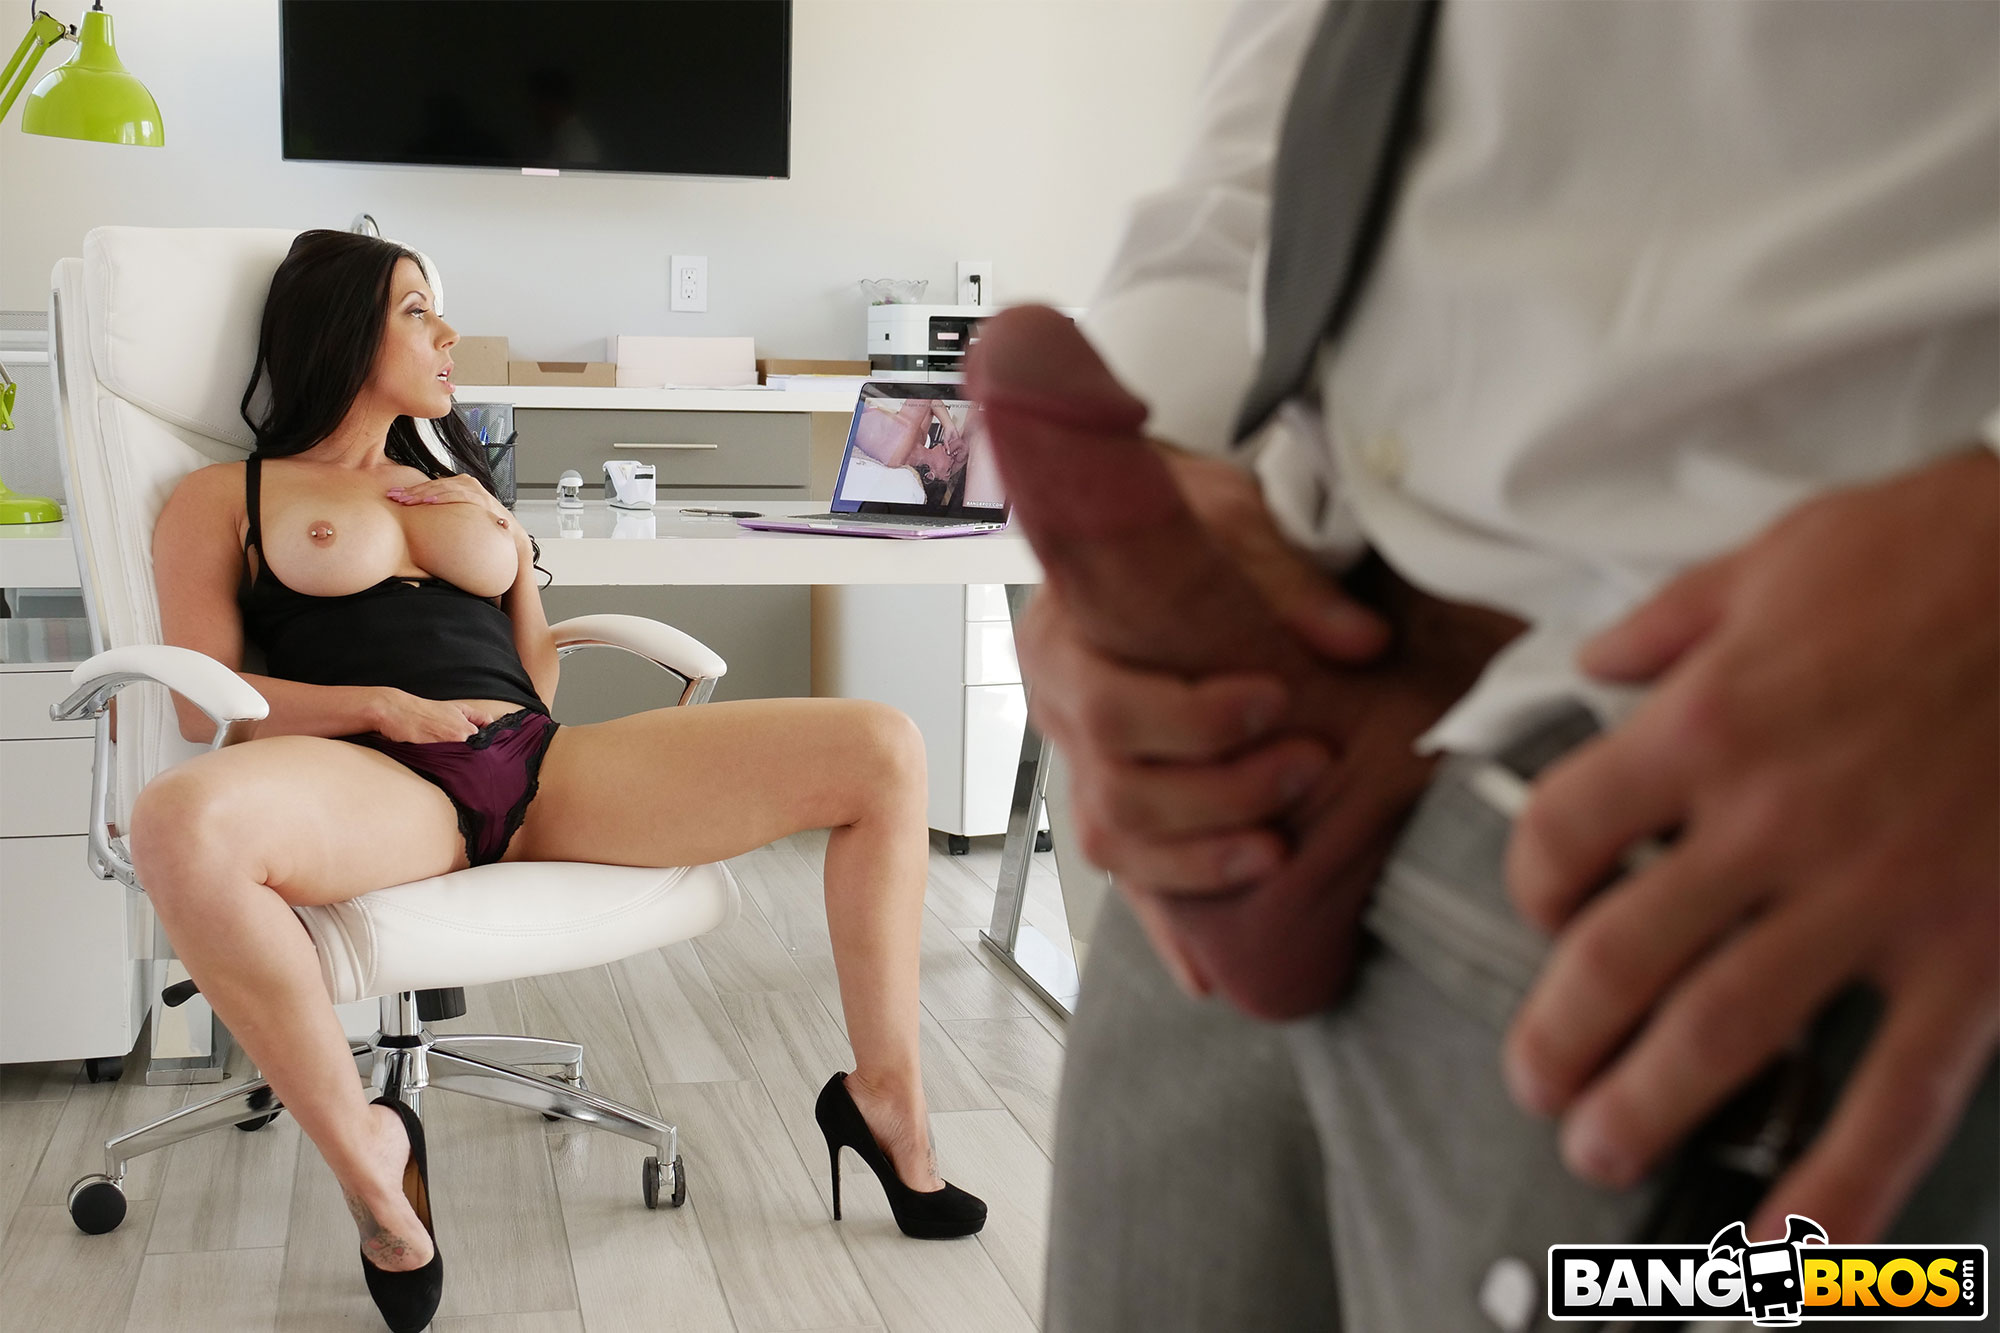 Bangbros 'Rachel Starr Gets Railed by Her Boss' starring Rachel Starr (photo 115)